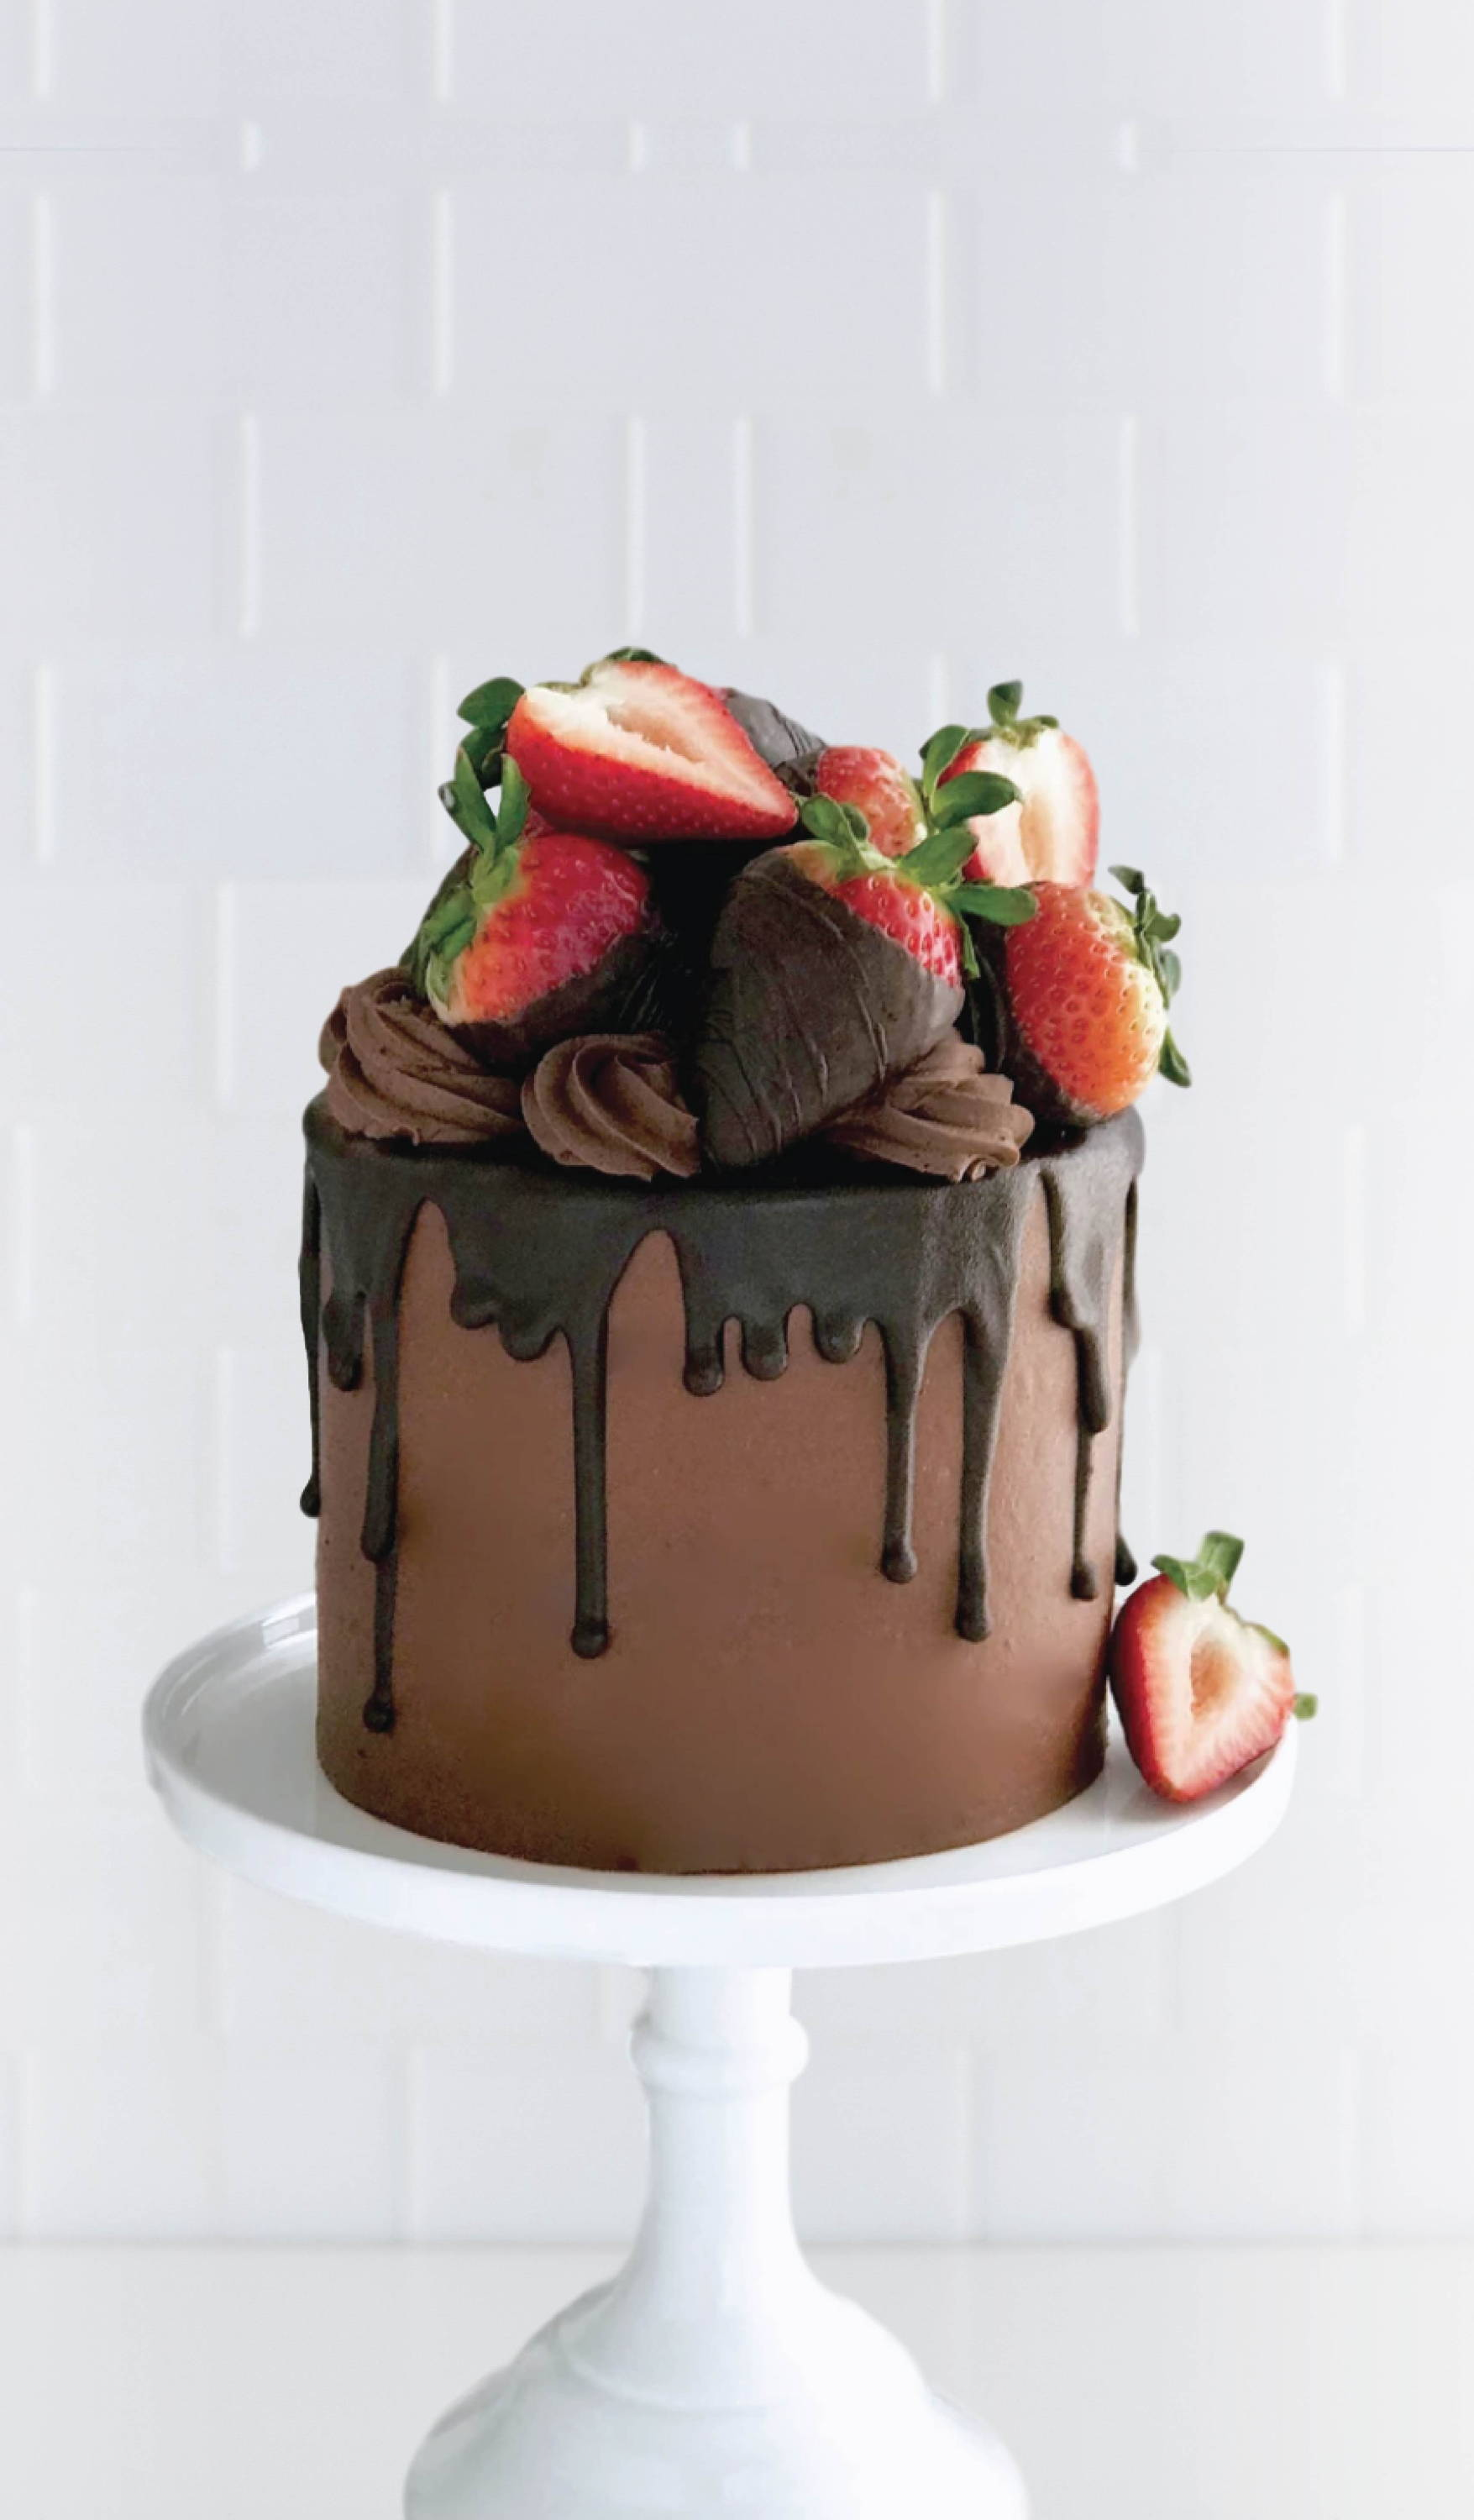 Chocolate covered strawberry cake , vegan available, anniversary cakes, gifts